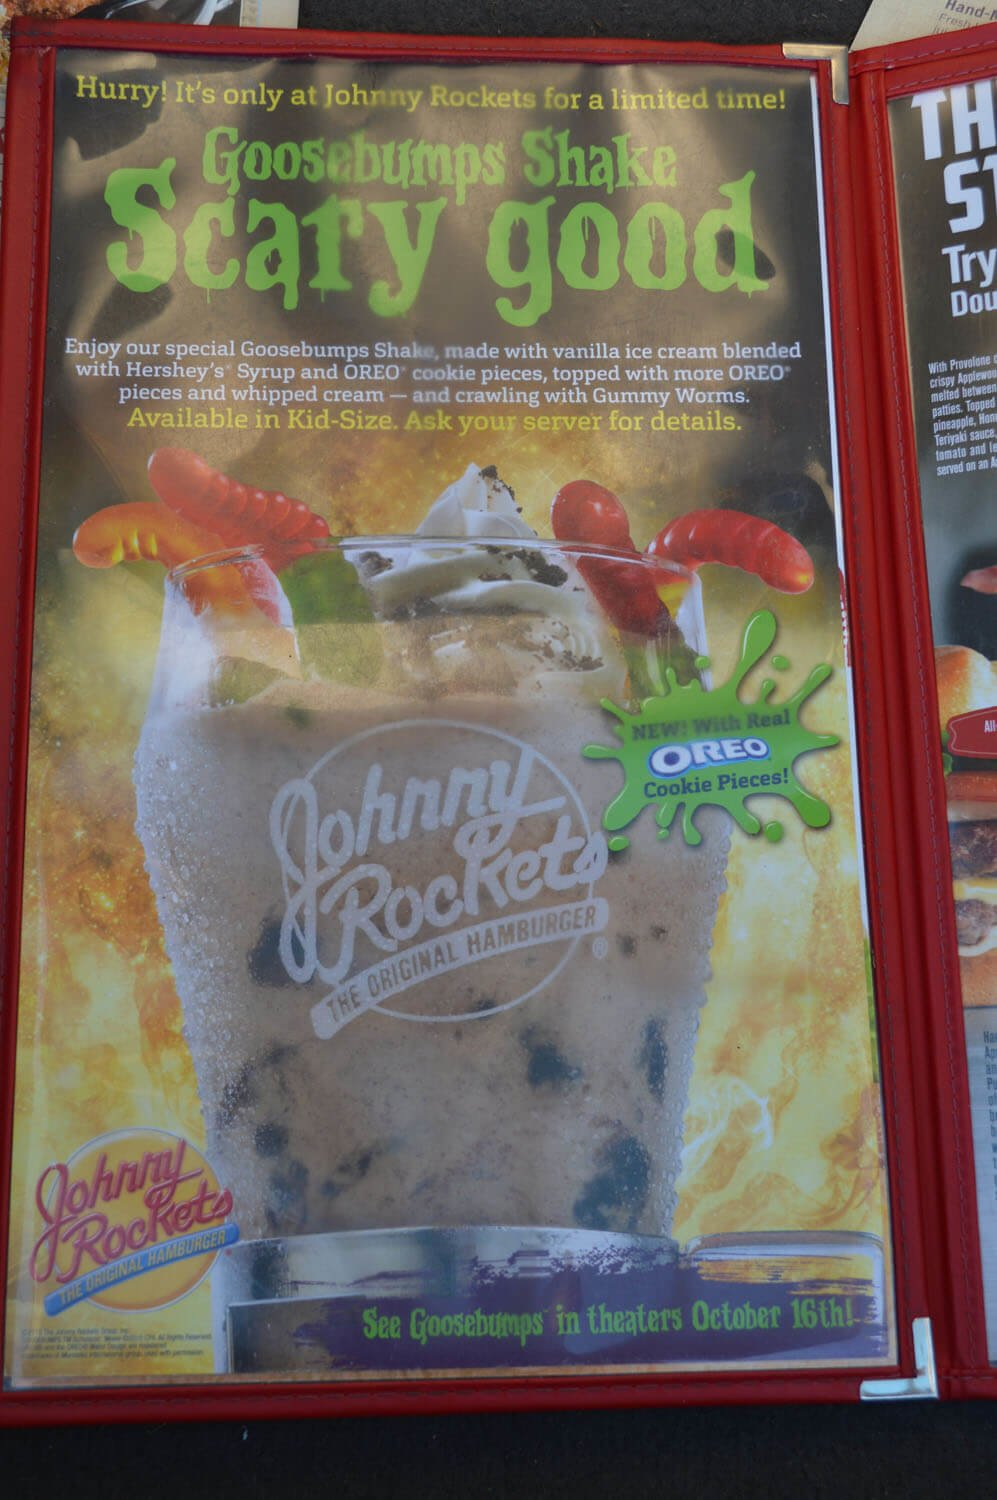 Johnny Rockets Menu – 6